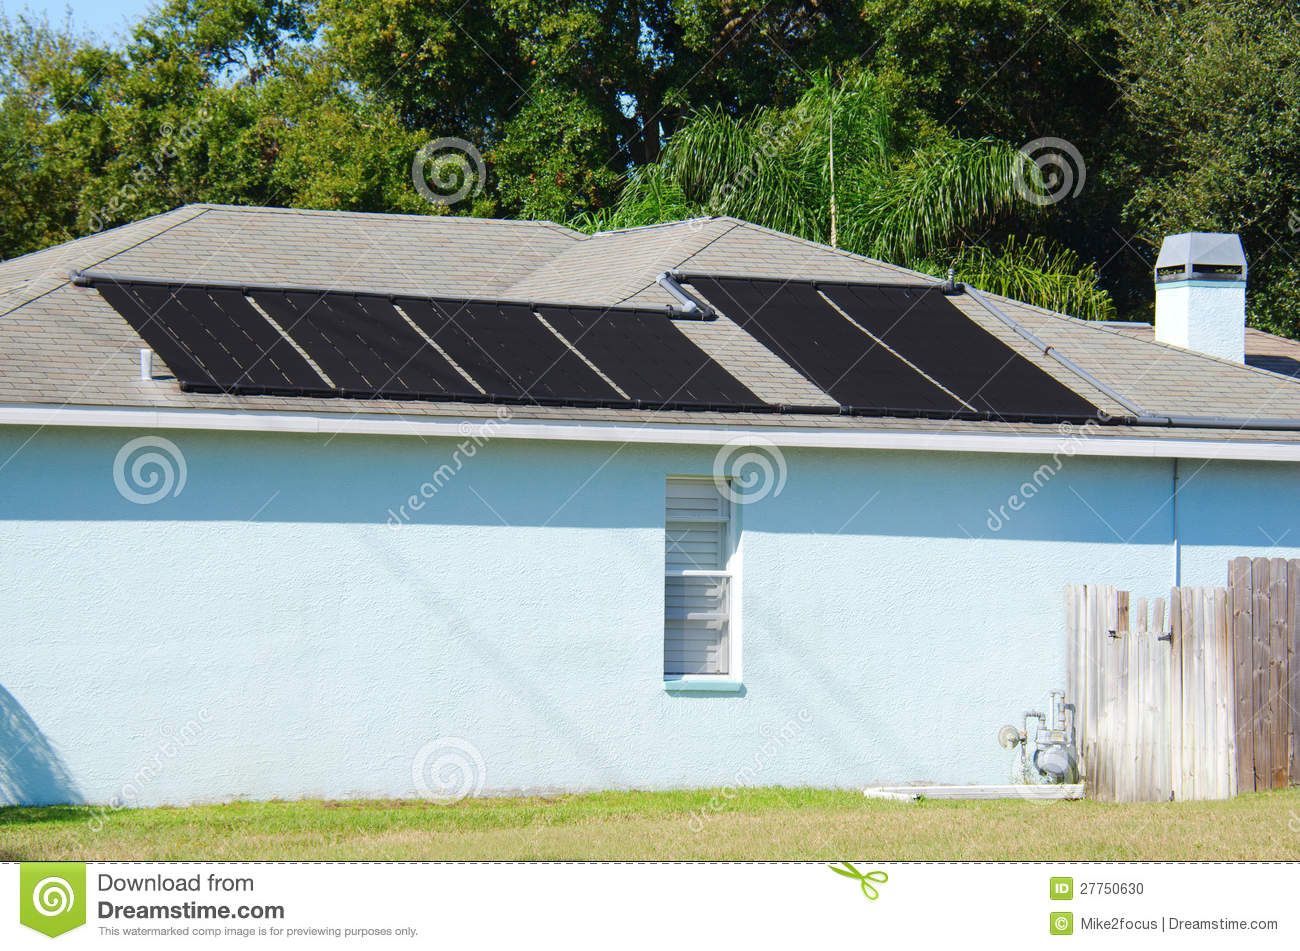 Solar powered water heating system on a house